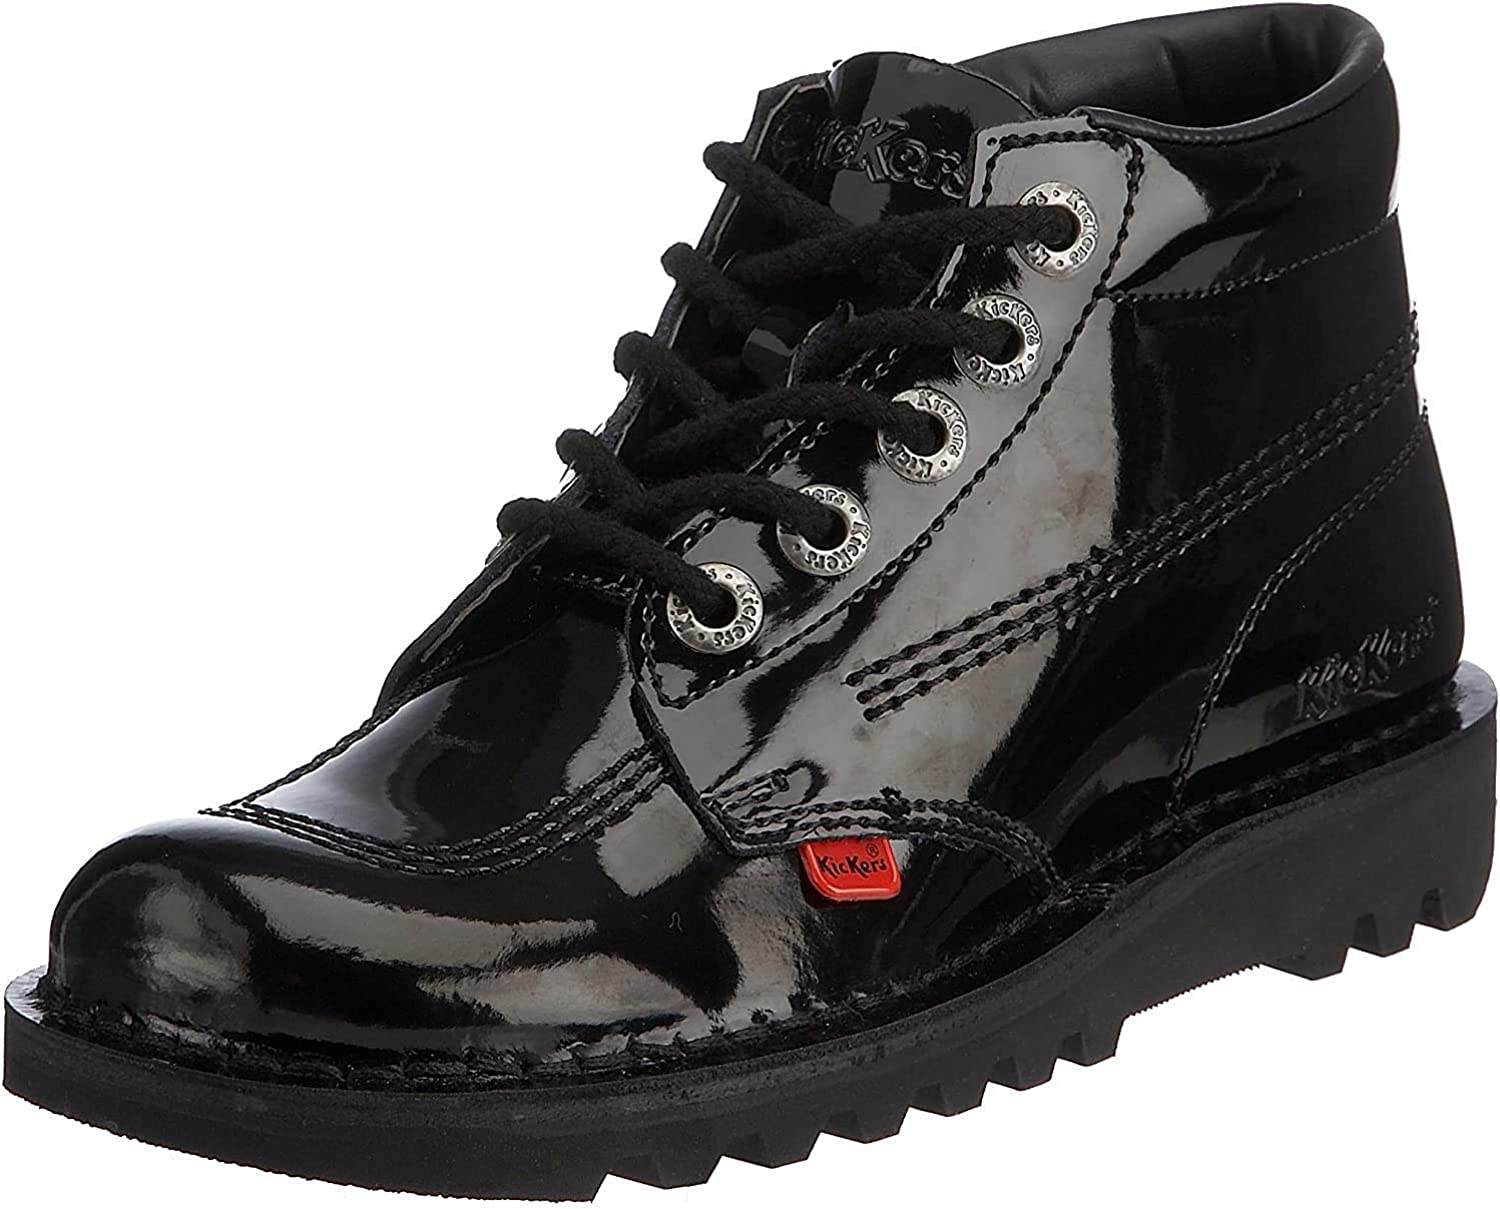 Kickers Kick Hi Max 77% OFF Black Ankle Patent Ranking integrated 1st place Boots Adult